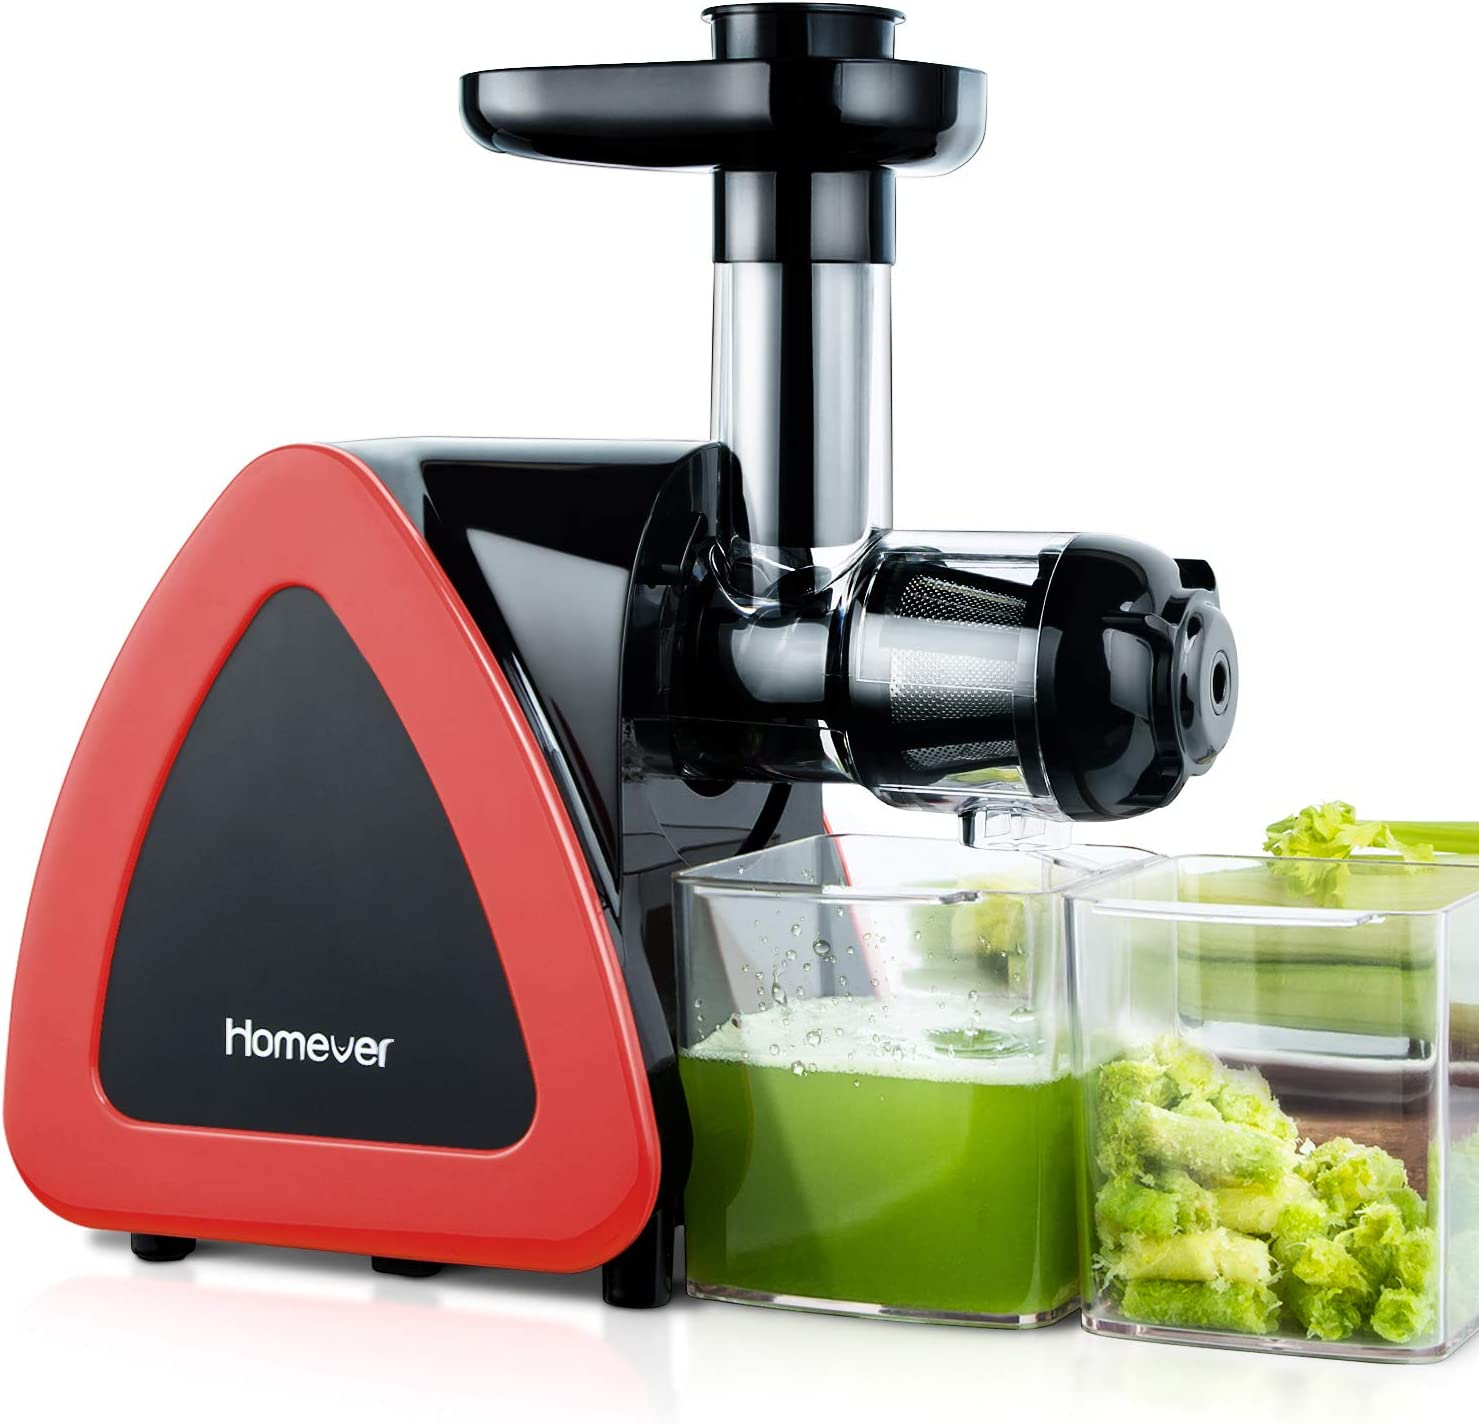 71t2whMhaWL. AC SL1500 Best Juicer Under $100 2021 - TOP Reviews & Buying Guide